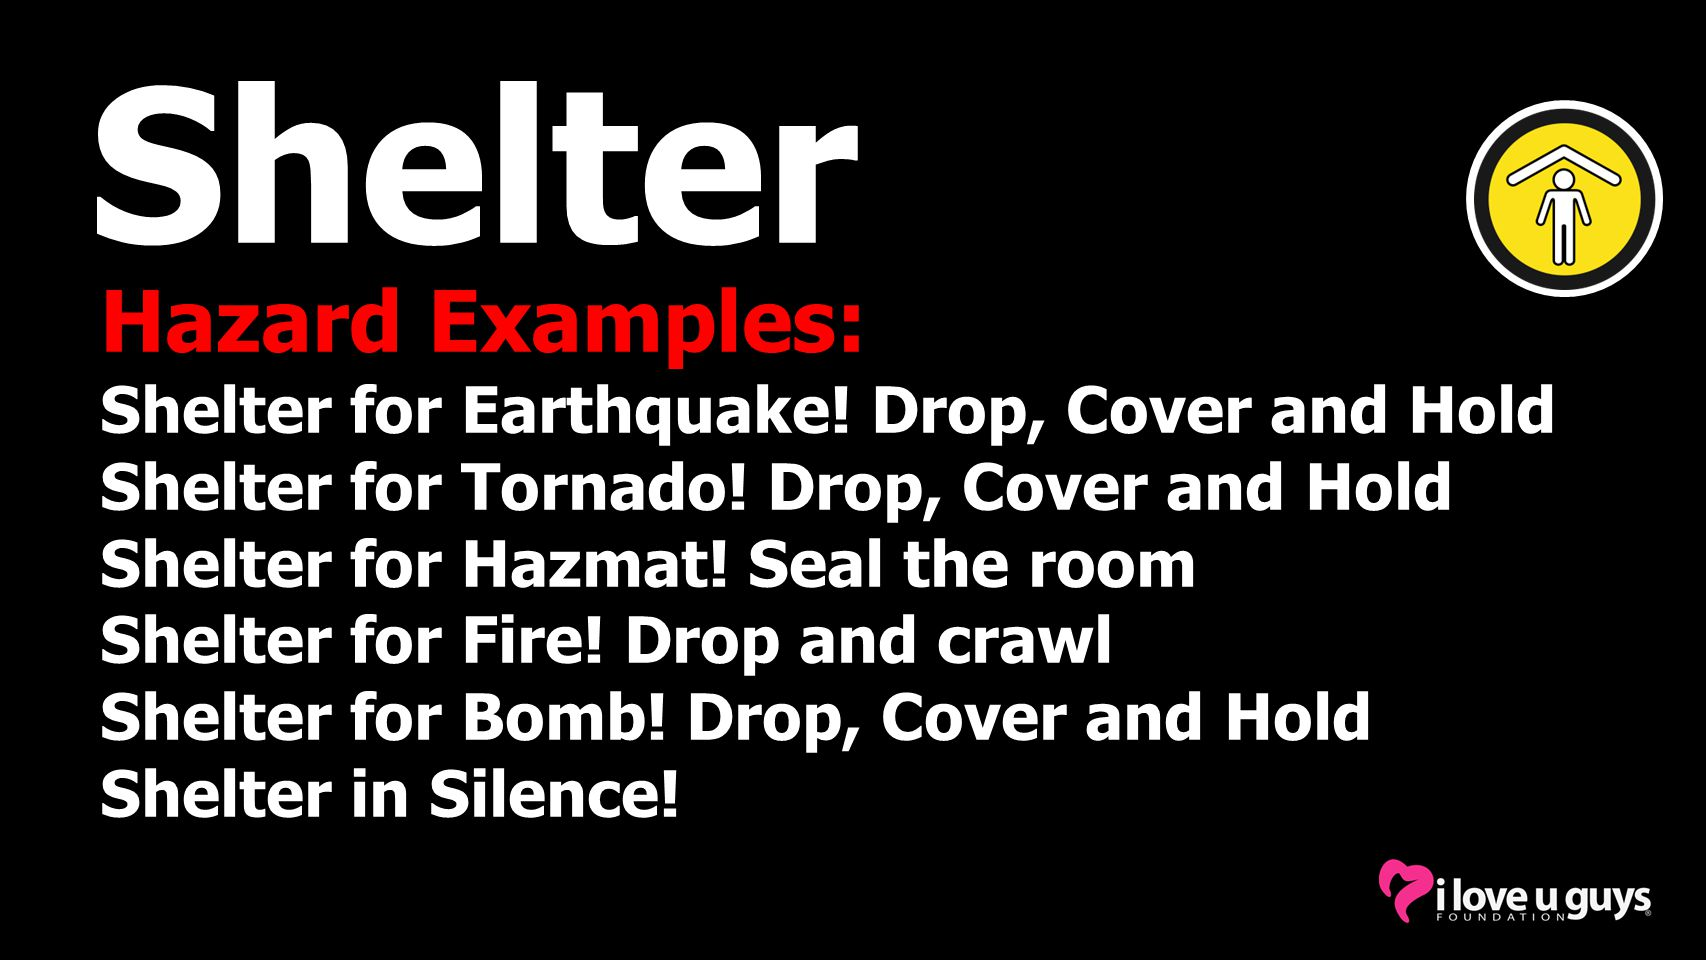 Shelter Hazard Examples: Shelter for Earthquake! Drop, Cover and Hold